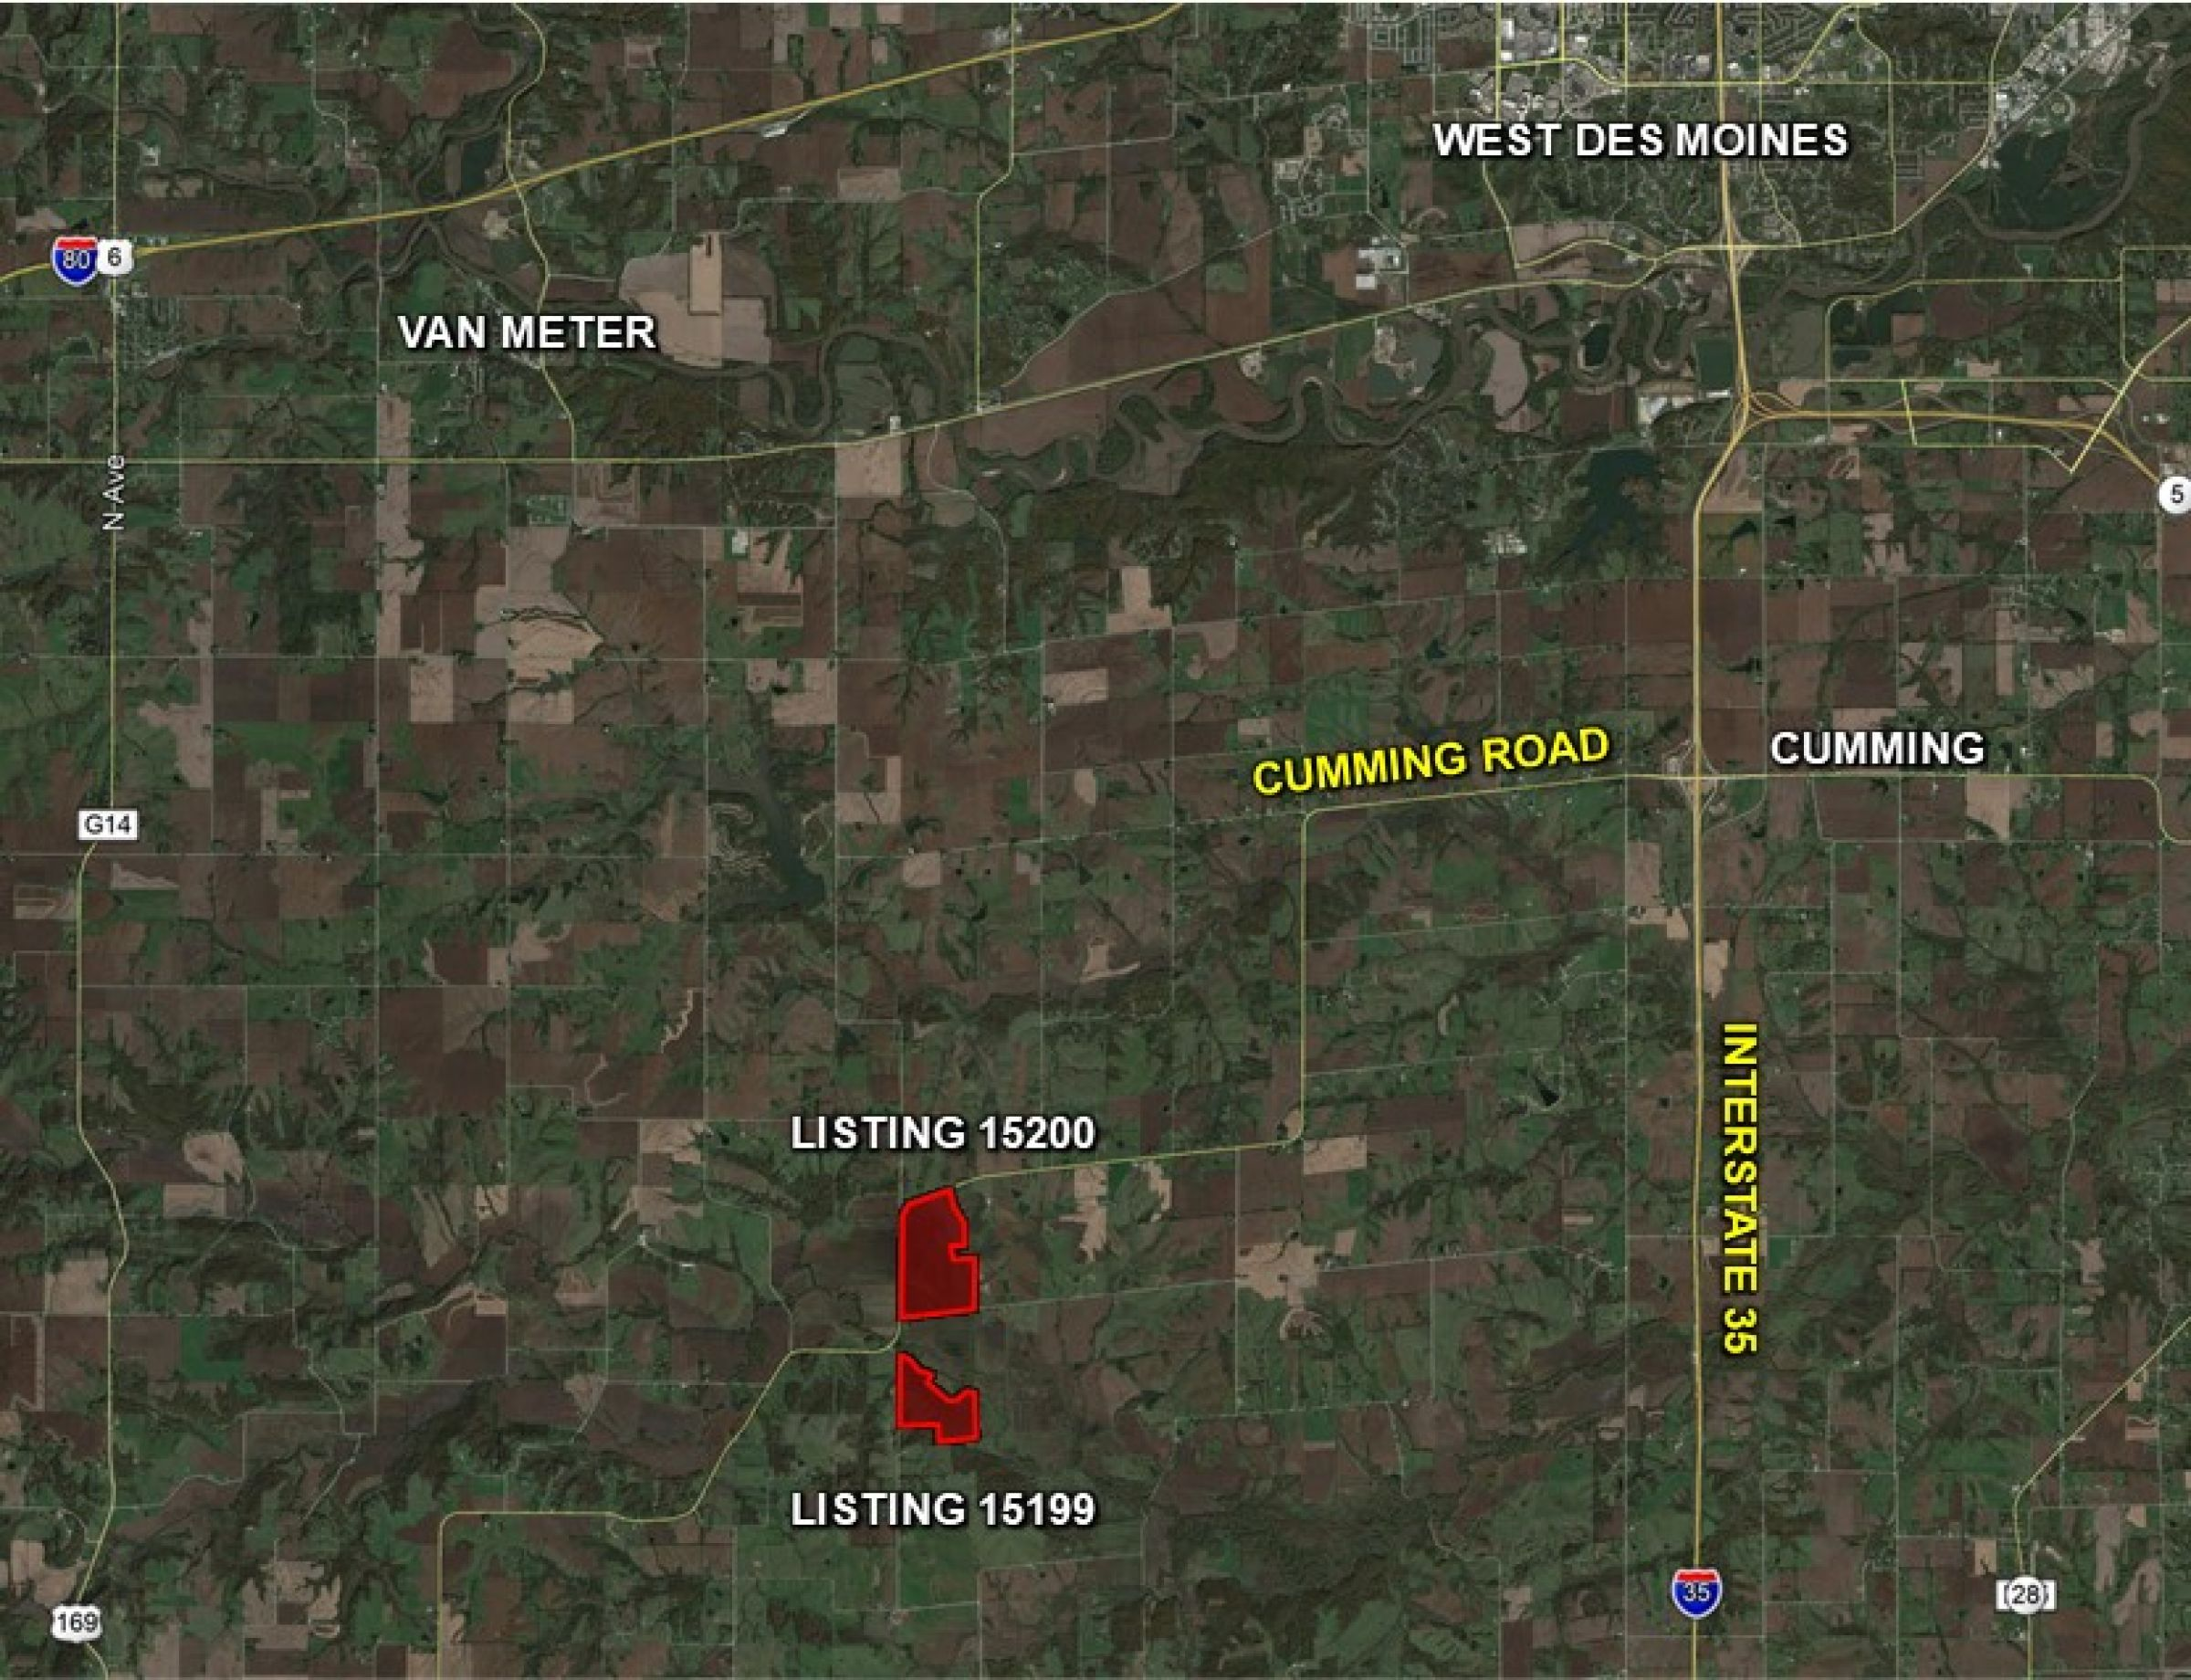 development-land-madison-county-iowa-149-acres-listing-number-15199-0-2020-10-06-162130.jpg